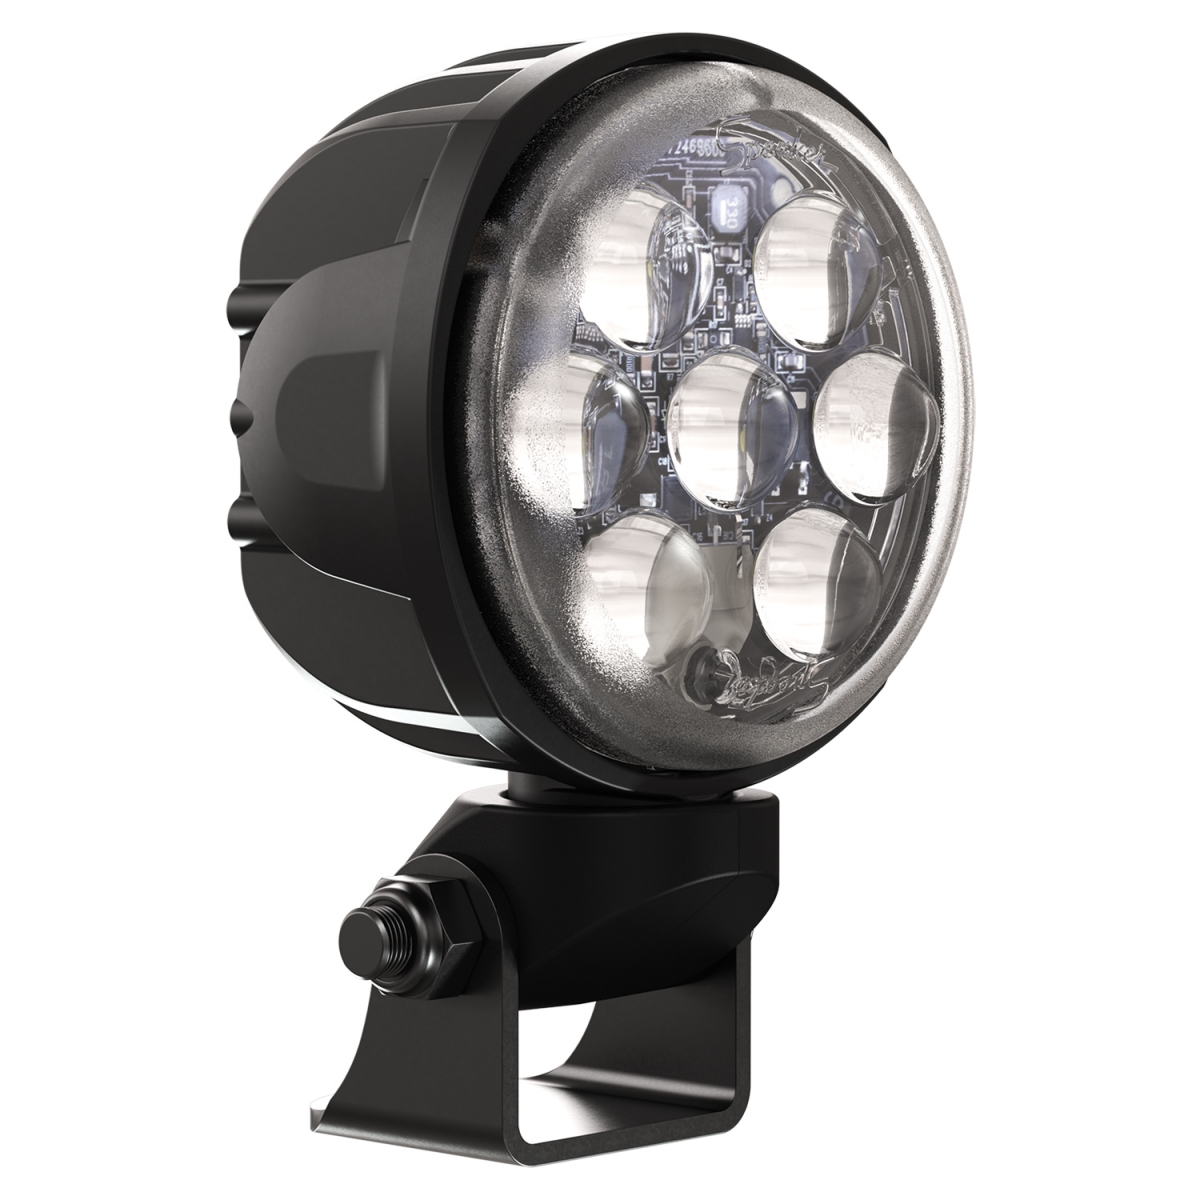 LED Safety Light – Model 4415